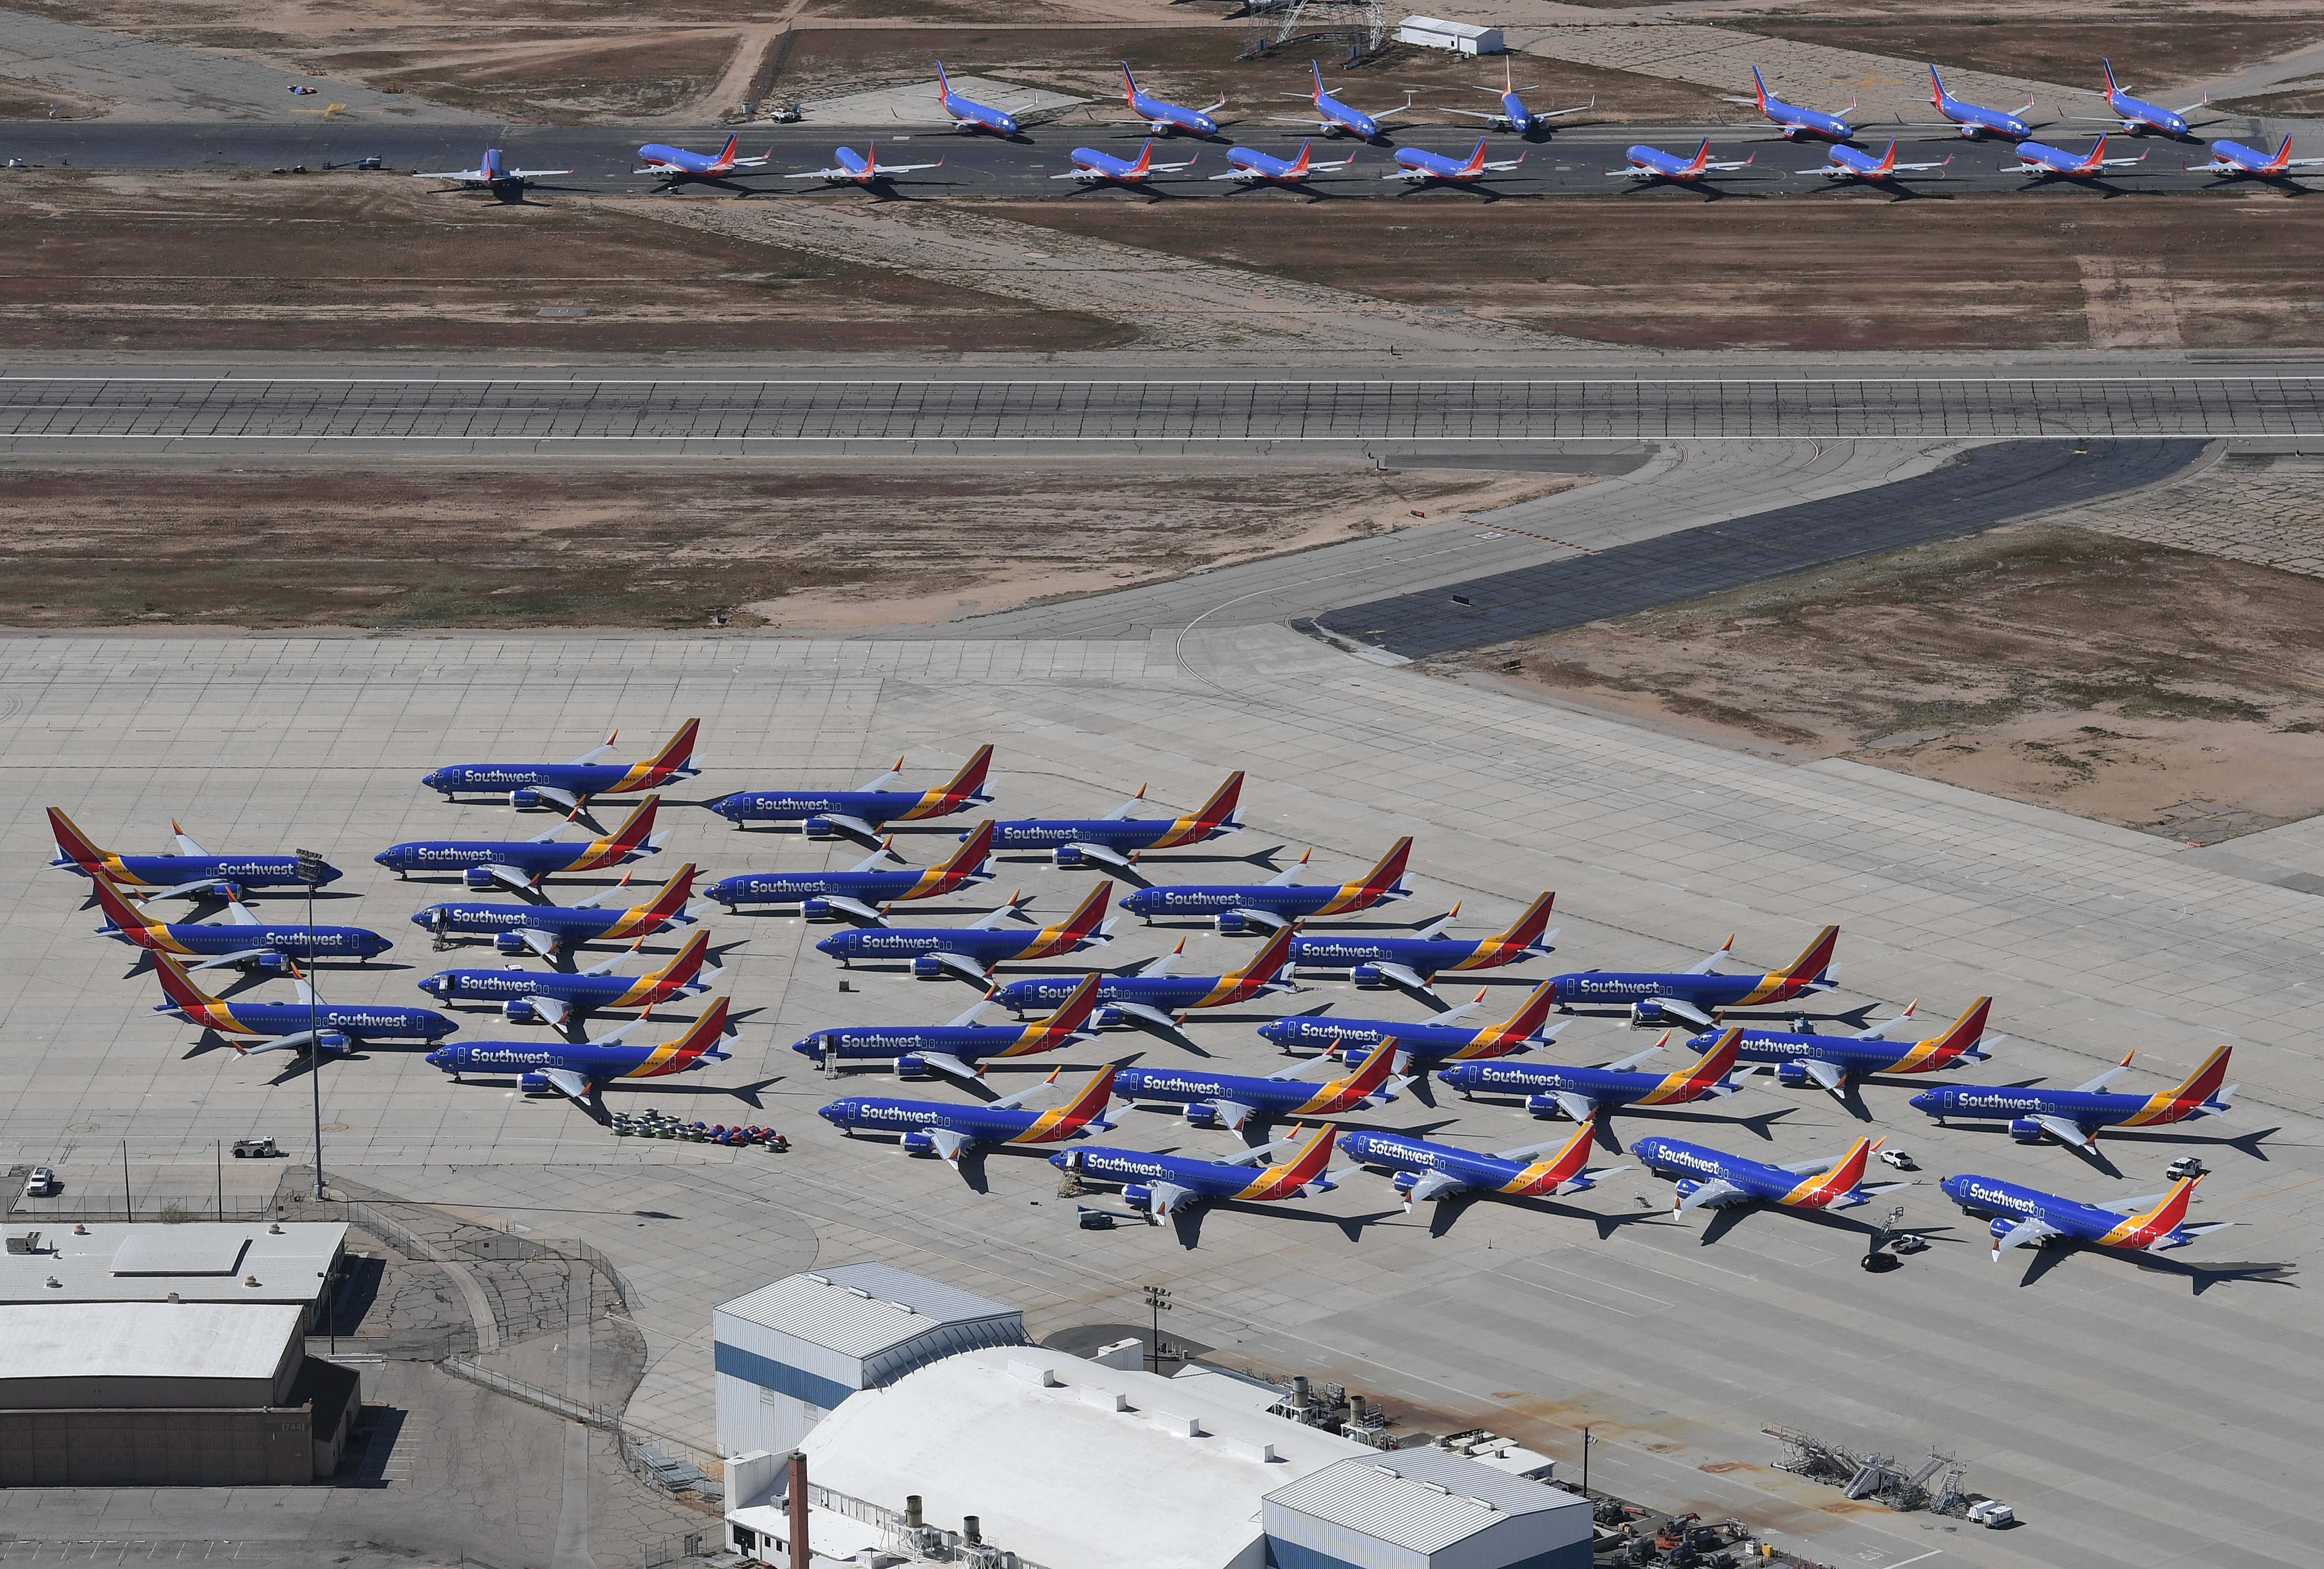 Airlines may be underestimating the cost of the 737 MAX groundings